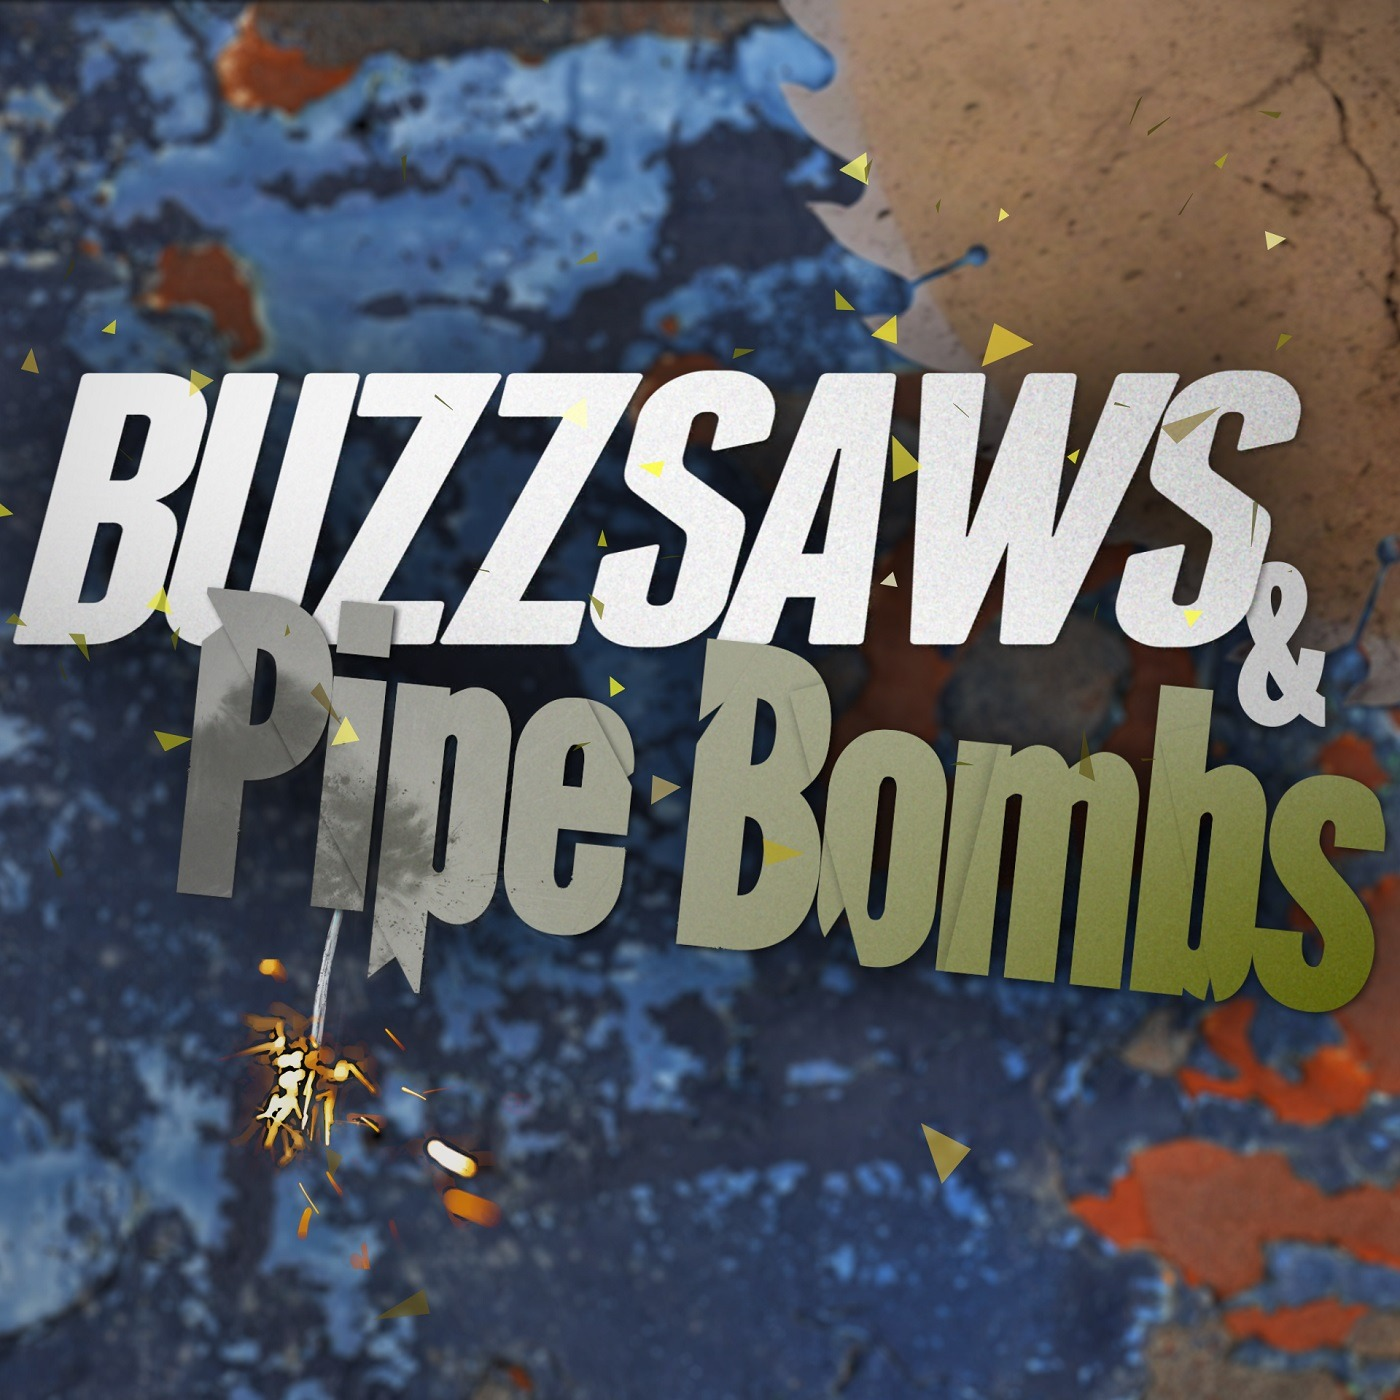 Buzzsaws & Pipe Bombs